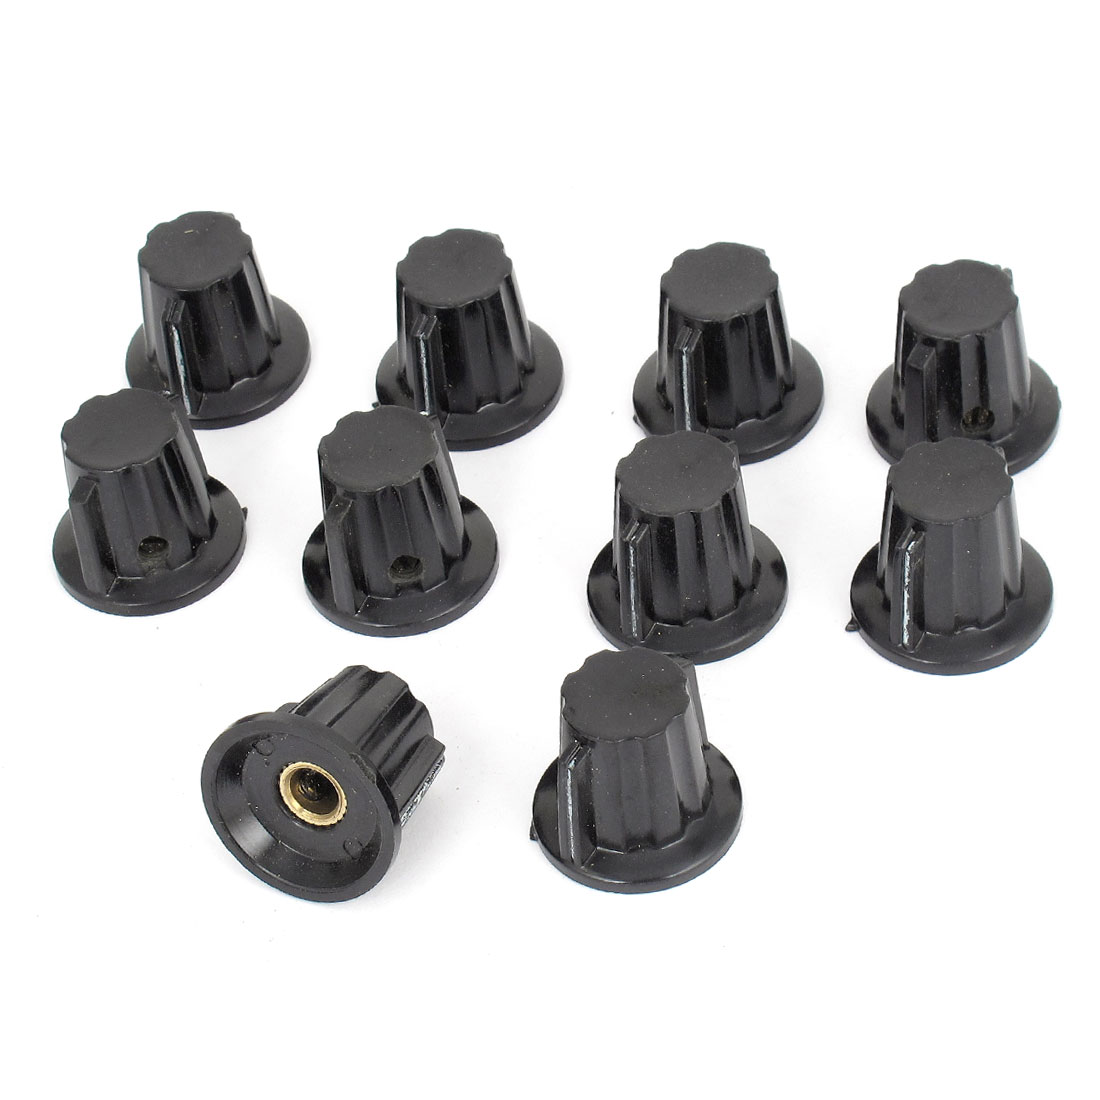 Black 15mm Top Dia 6mm Shaft Potentiometer Volume Control Knobs 10 Pcs